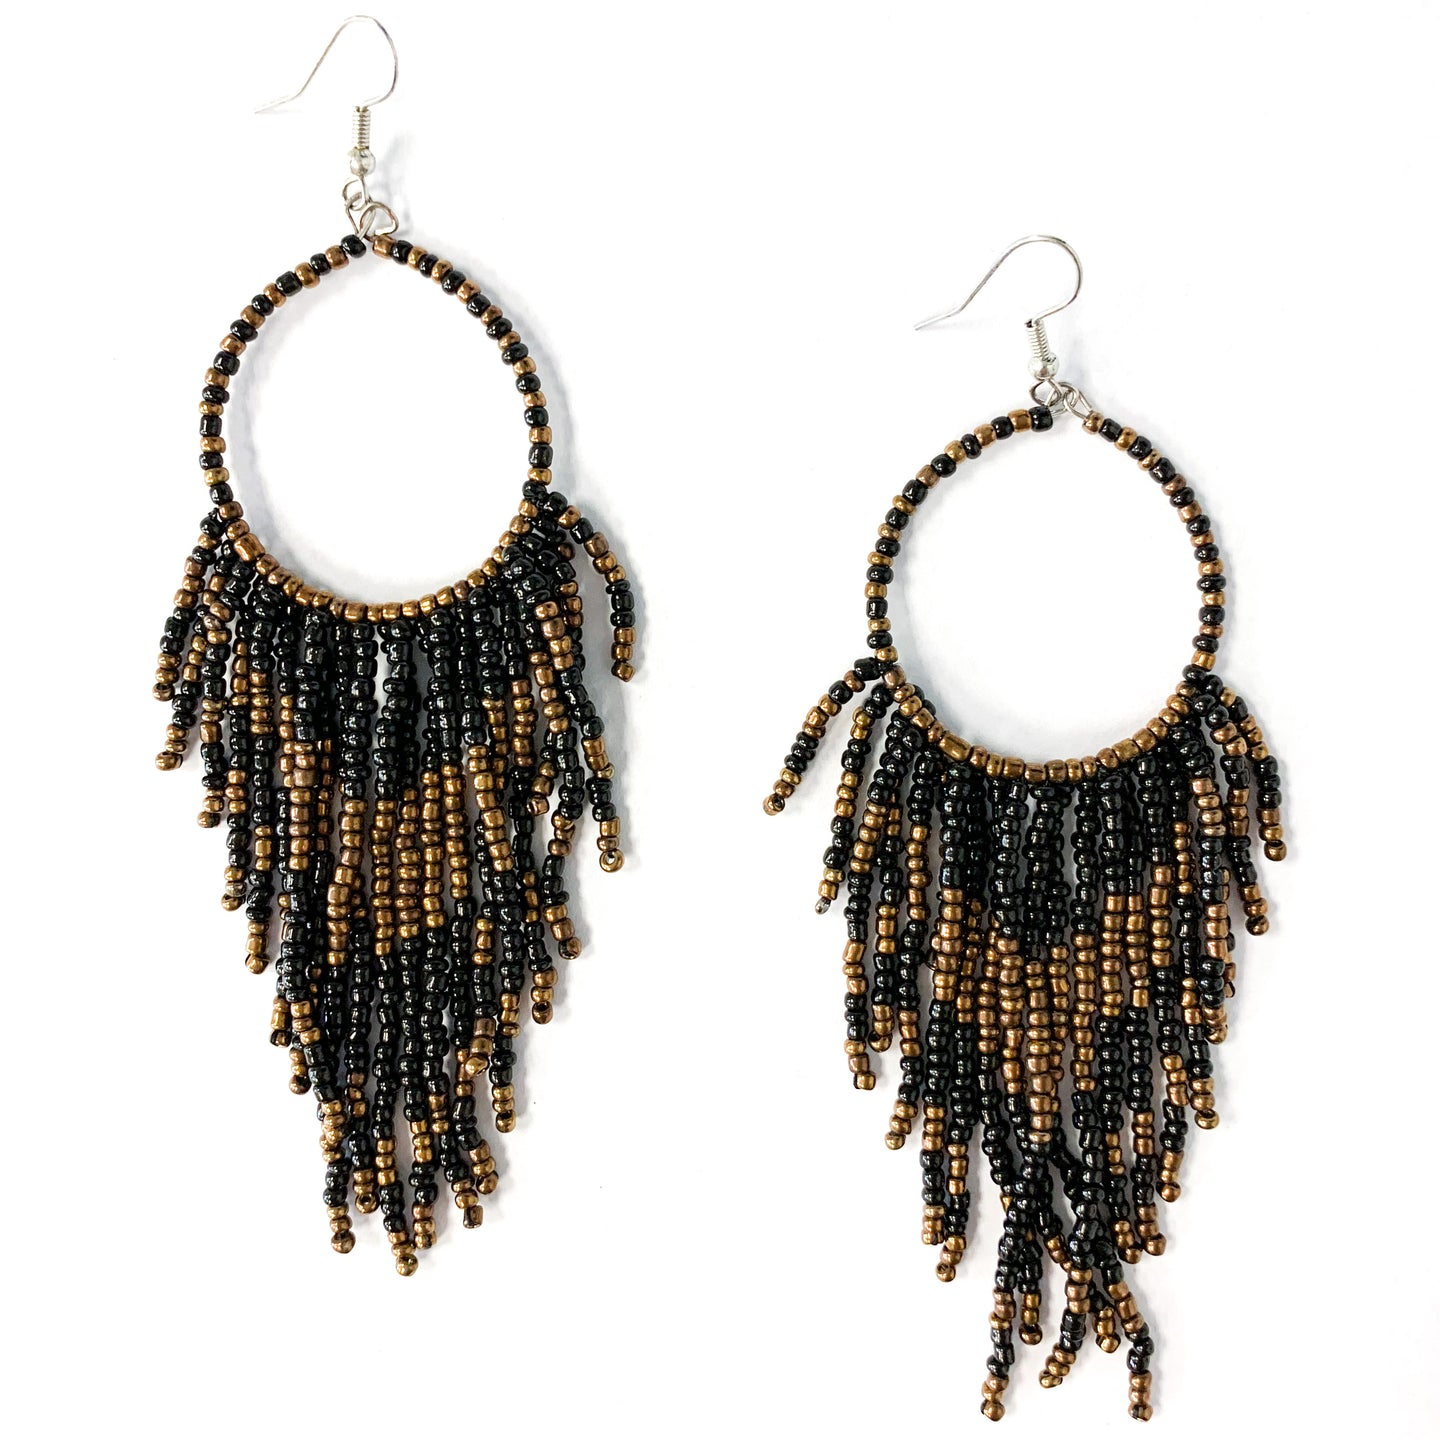 The Lacie Earring - Black